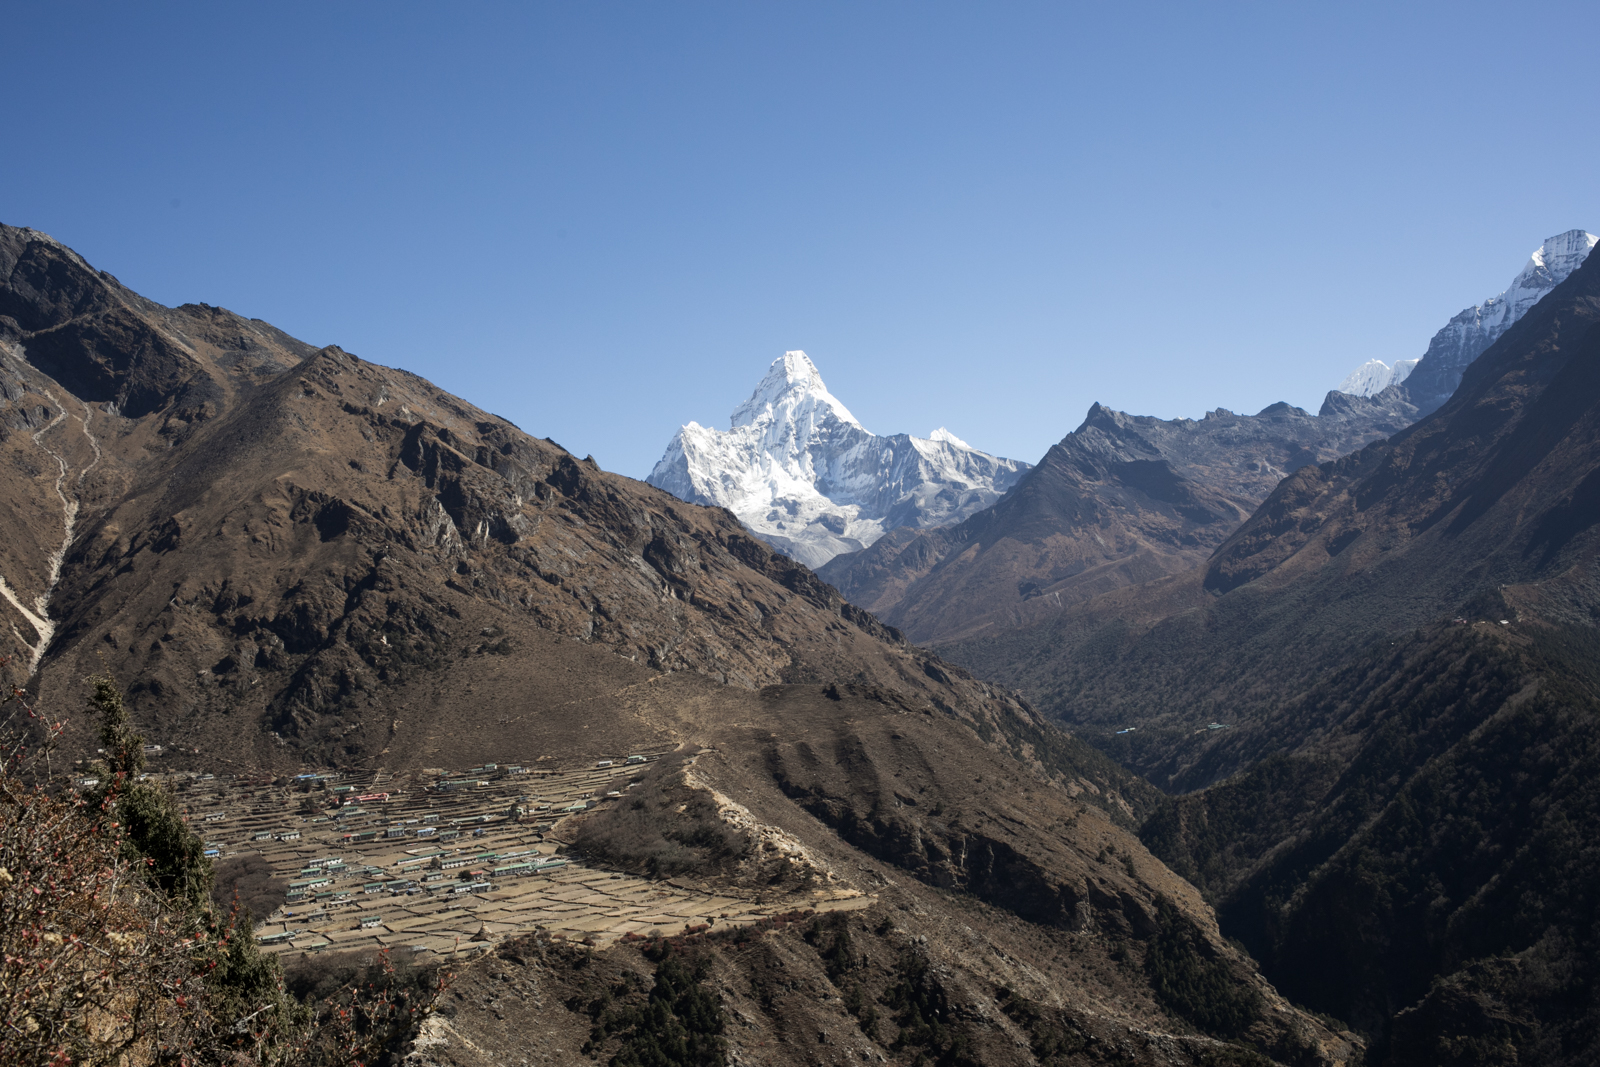 Phortse with Ama Dablam.